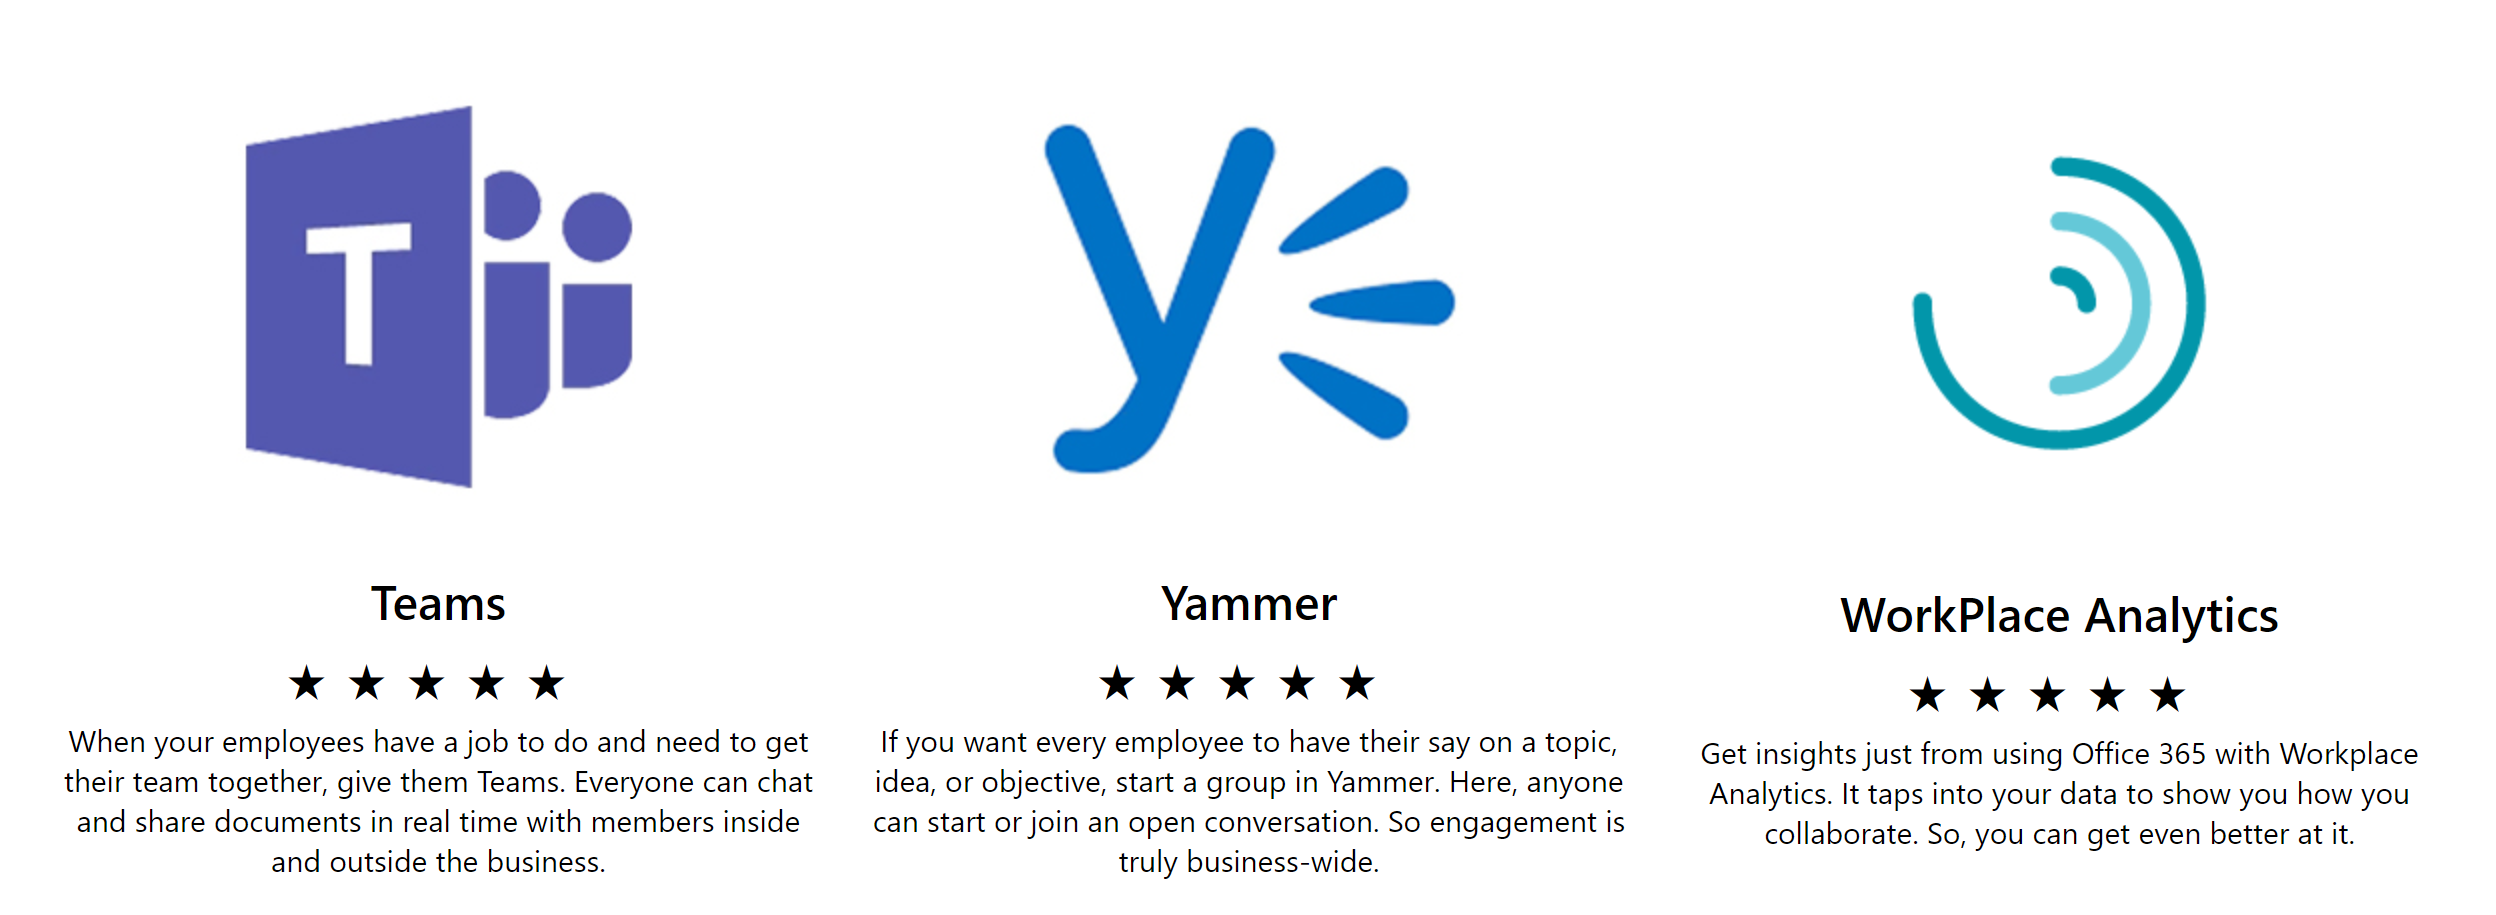 Teams, Yammer and Workplace Analytics logos